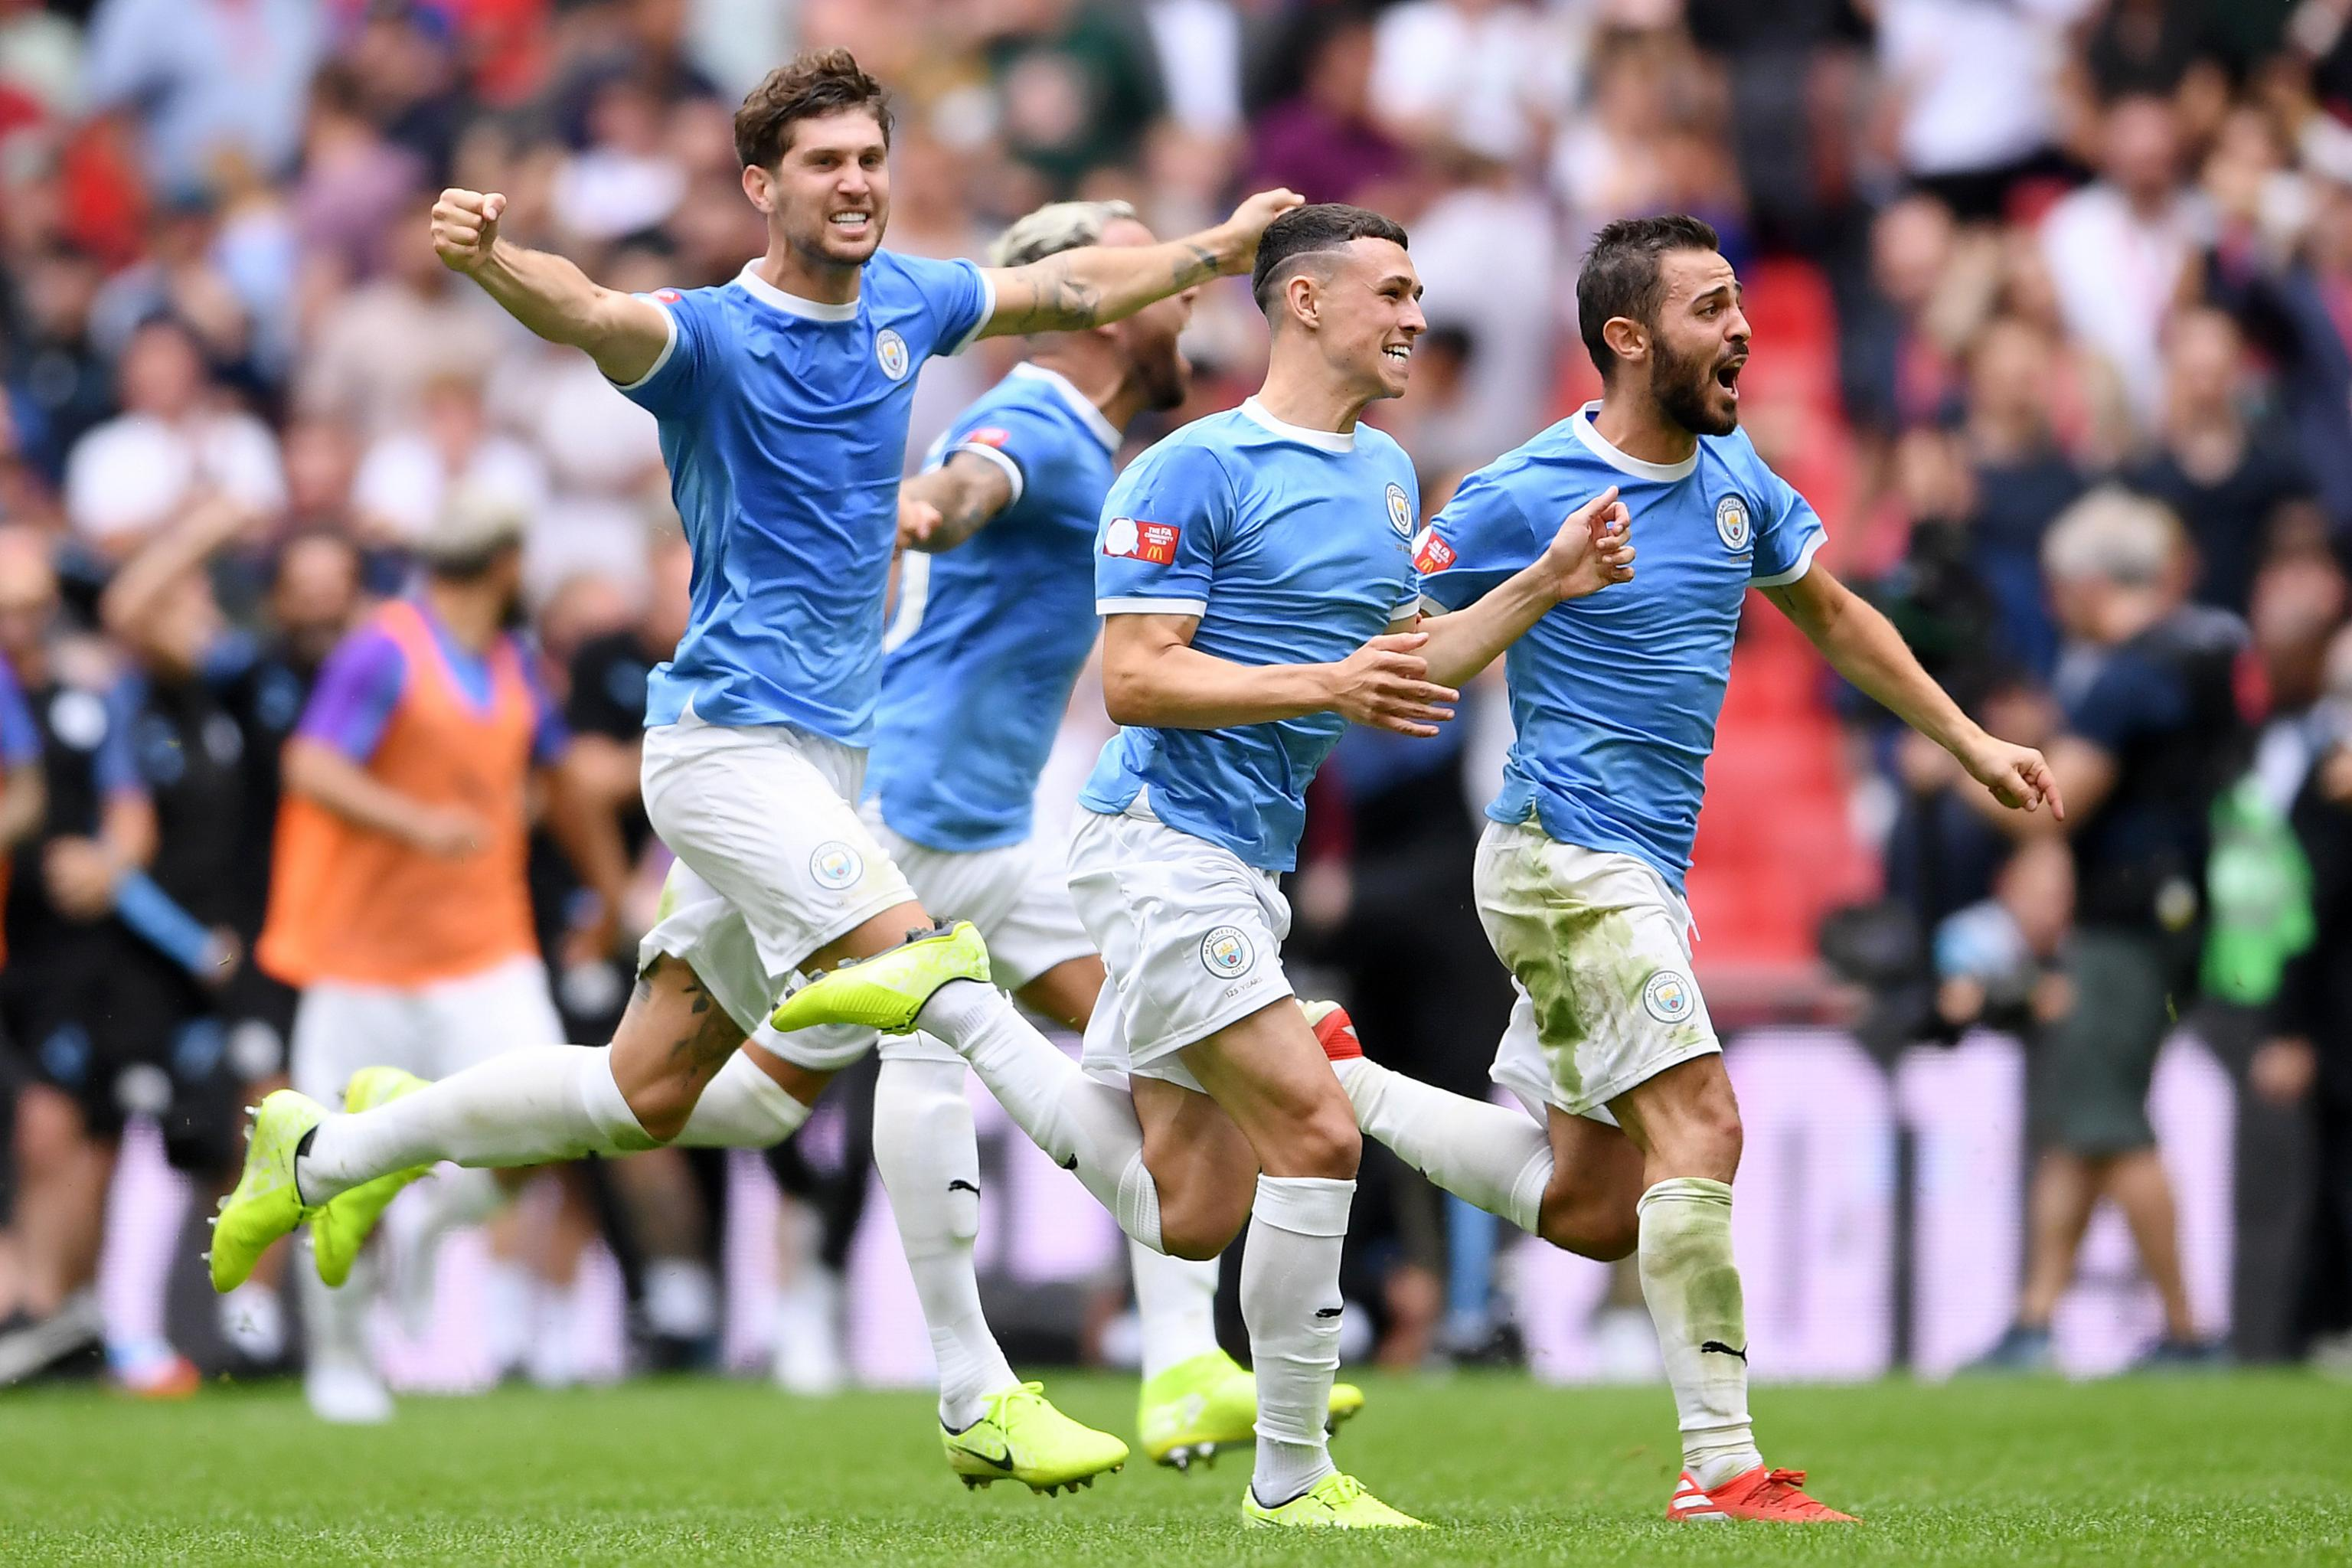 Manchester City Top Liverpool on Penalties to Win 2019